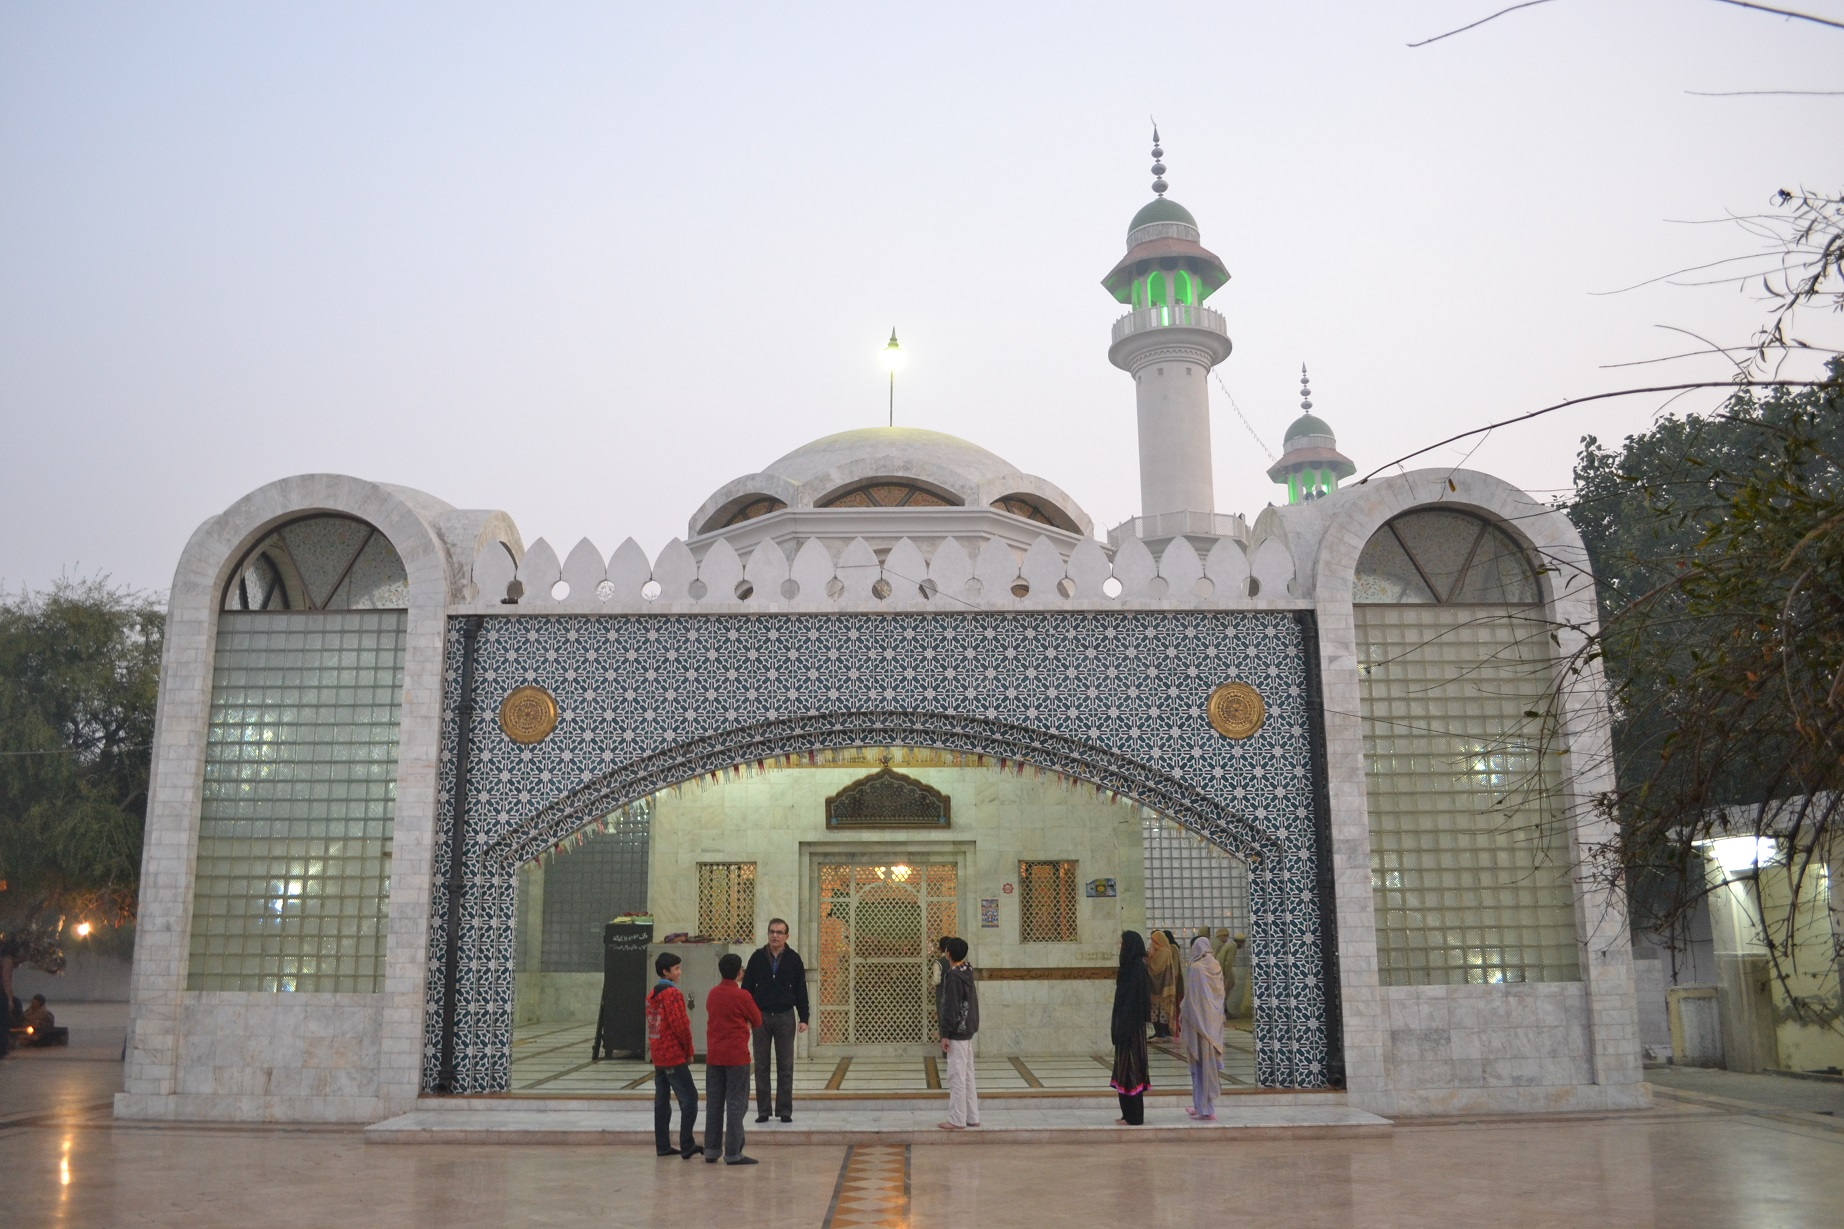 Bulleh Shah's shrine Kasur, Punjab. Credit: Khalid Mahmood | Wikimedia Commons | Licensed under CC BY SA 3.0